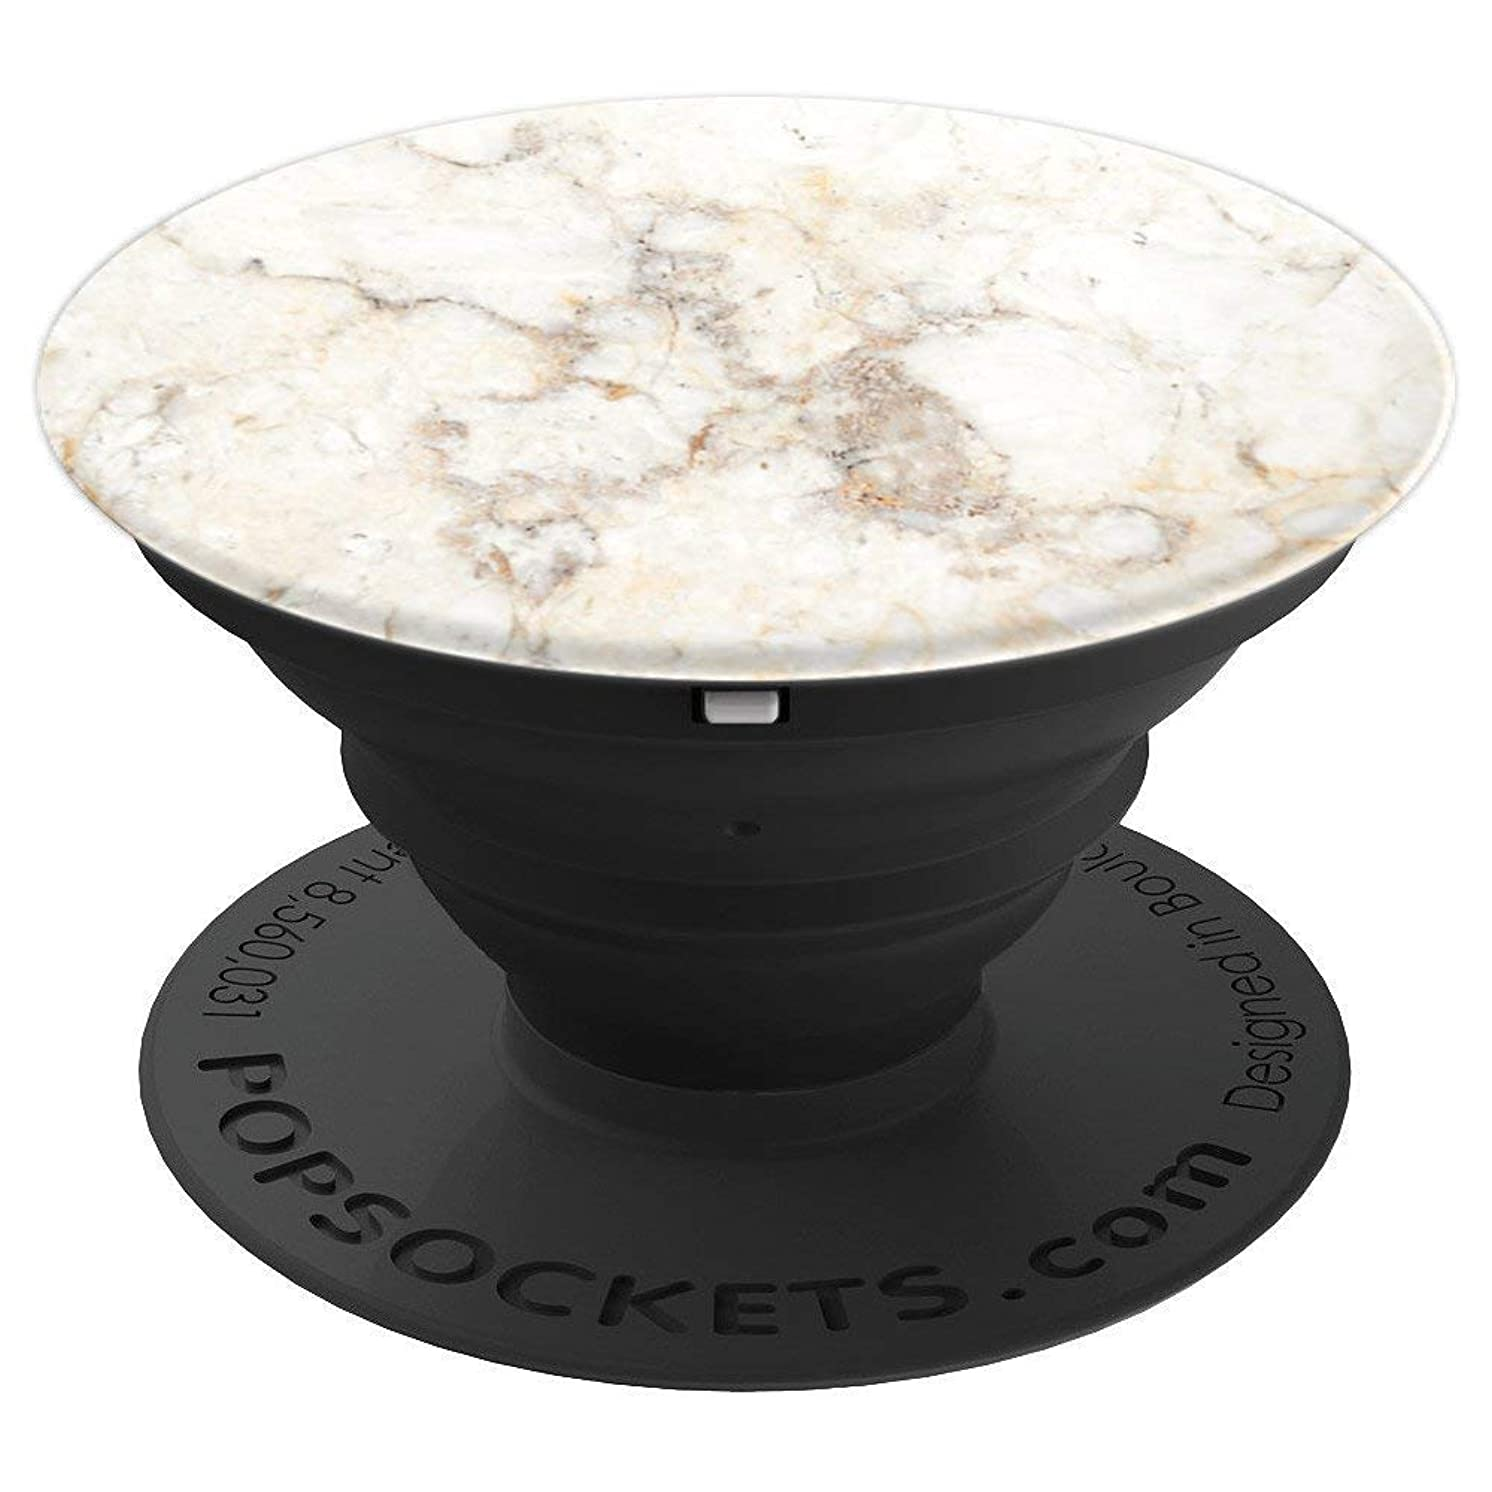 Marble Granite Stone Rock Tile Vein Deco Quartz Mineral Art - PopSockets Grip and Stand for Phones and Tablets